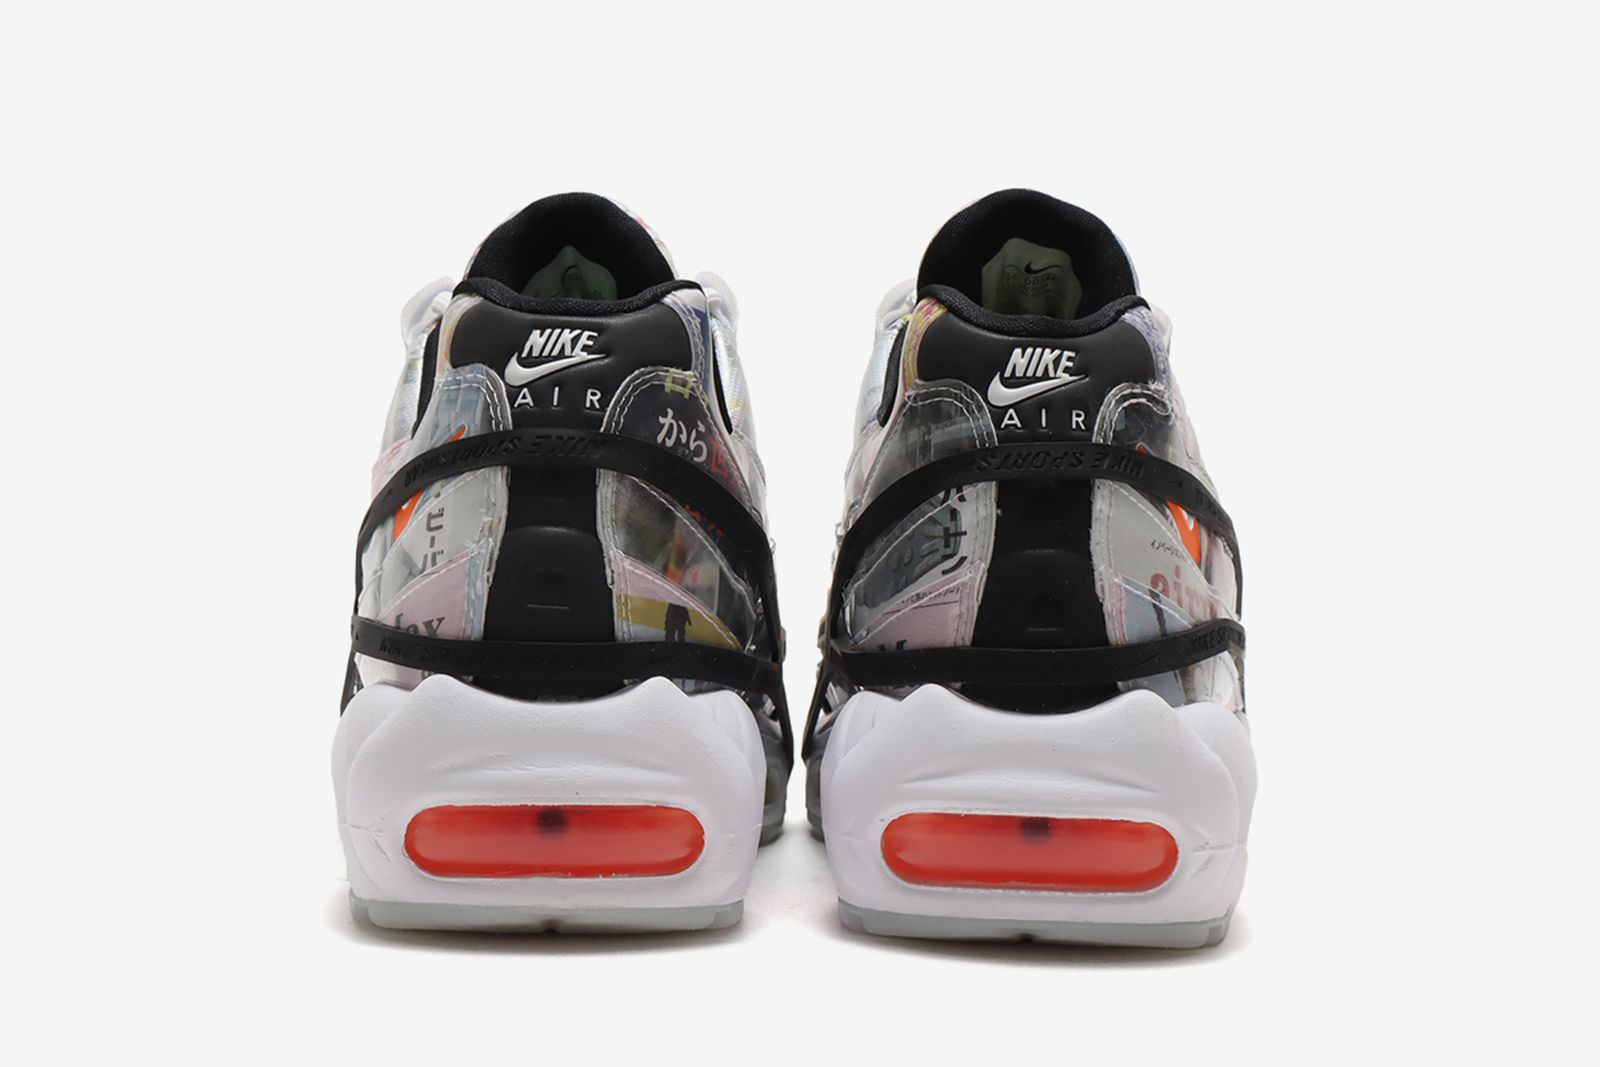 nike-air-max-convenience-store-collection-release-info-15